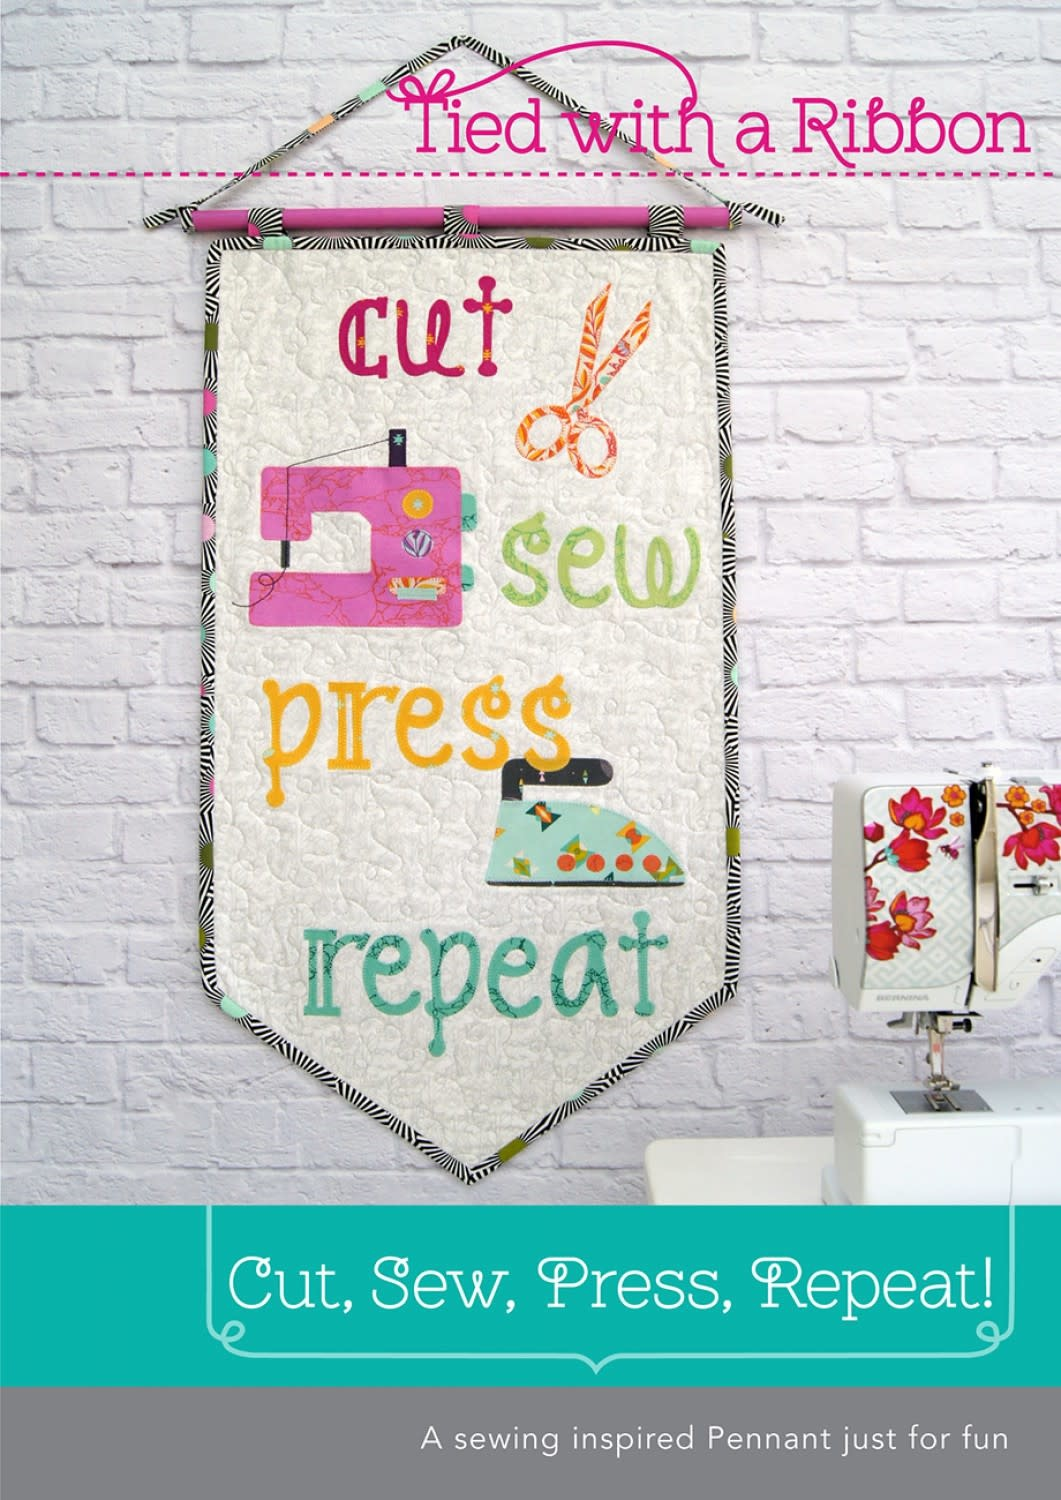 Tied with a Ribbon Cut, Sew, Press, Repeat Pennant Pattern